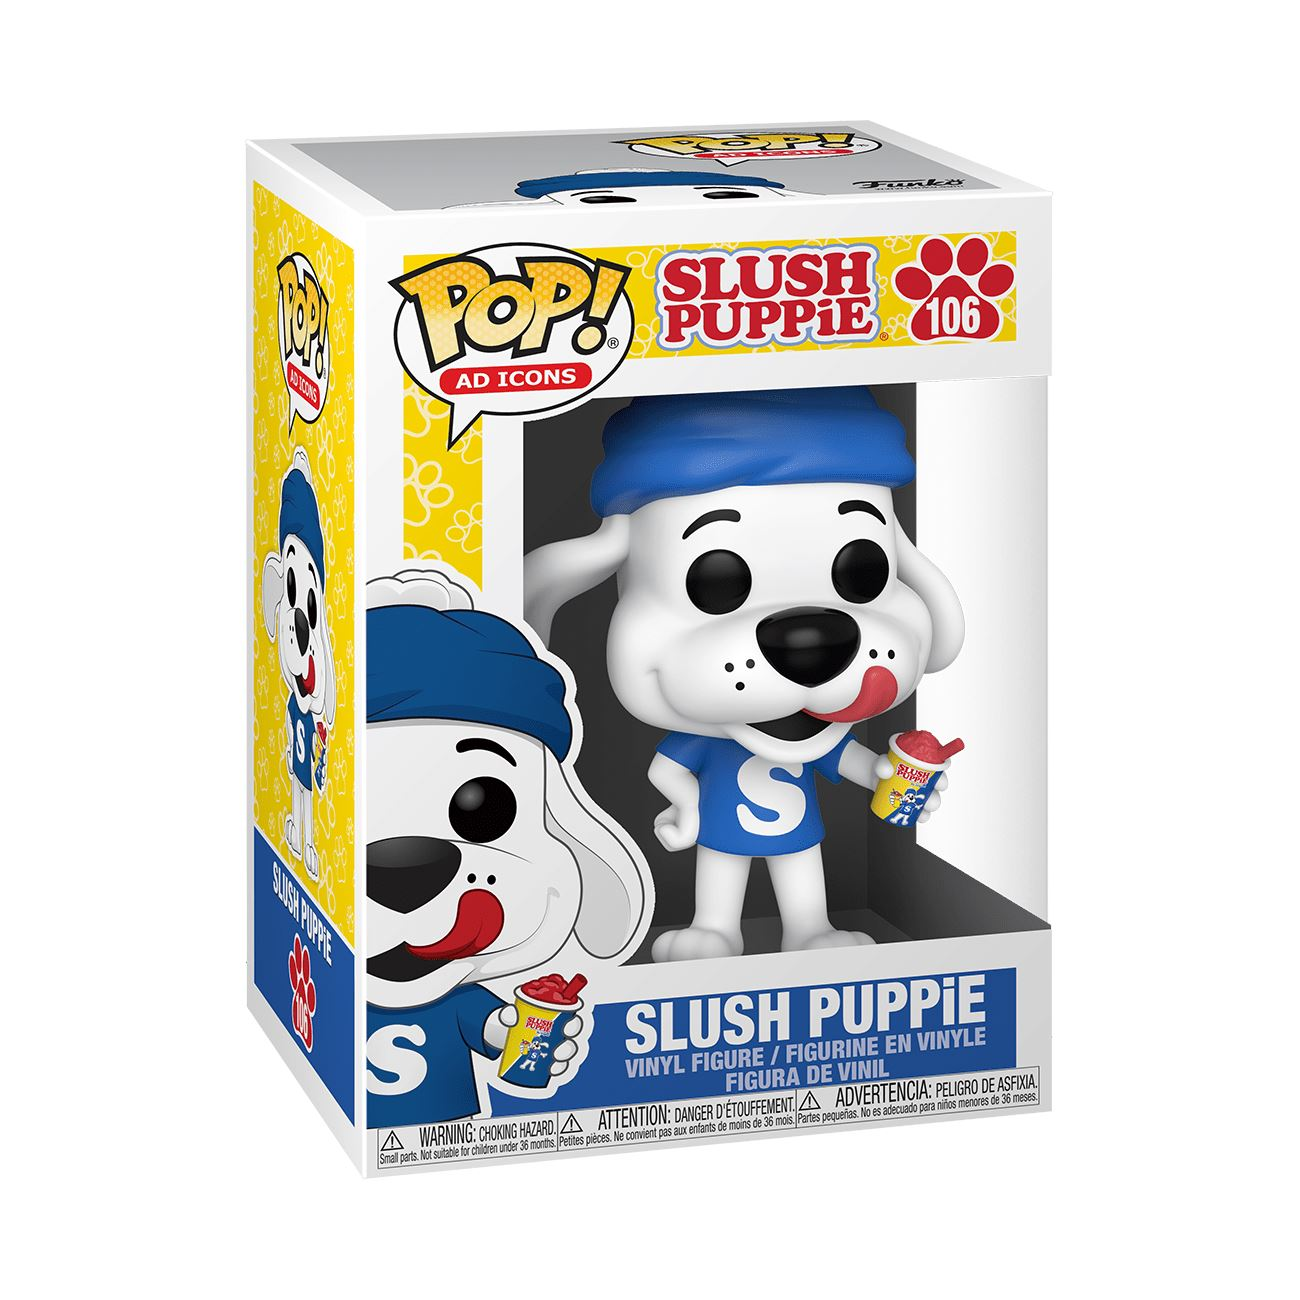 Slush Puppy #106 Funko POP! Ad Icons [PRE-ORDER] Pop! Funko